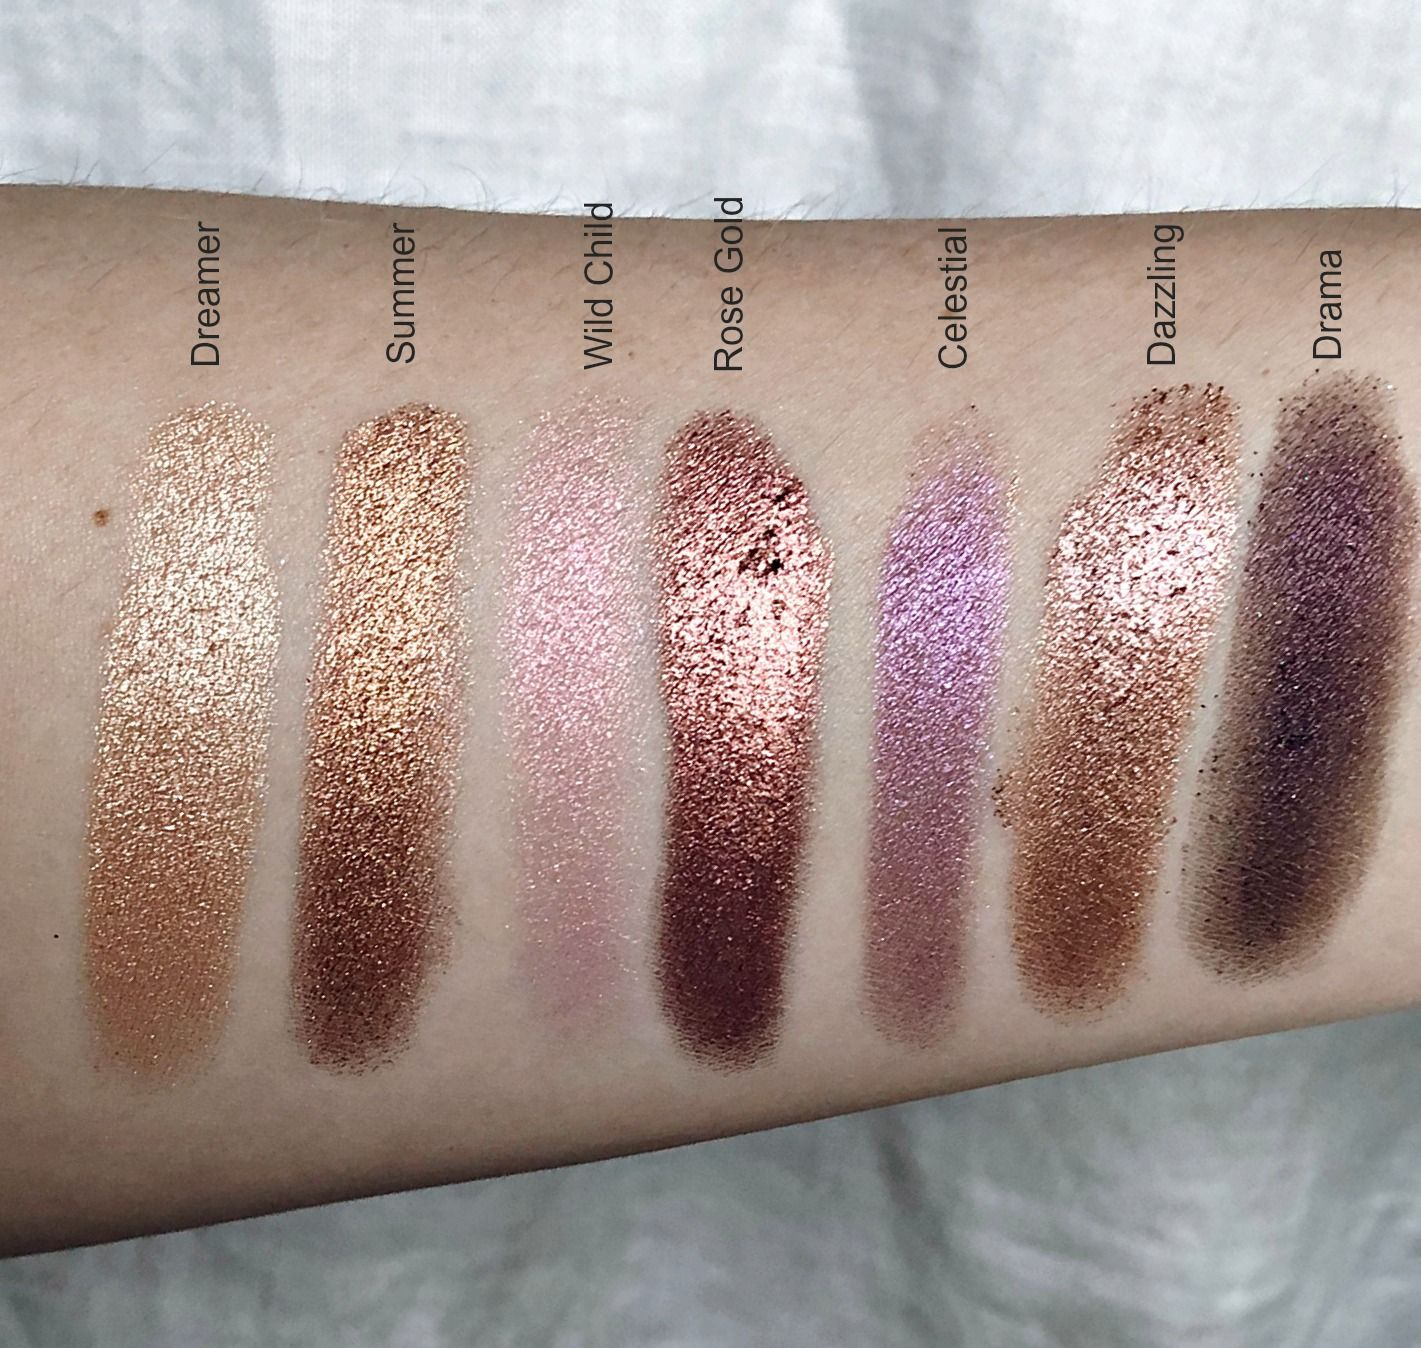 ABH Norvina Palette Review + Swatches Black hair makeup